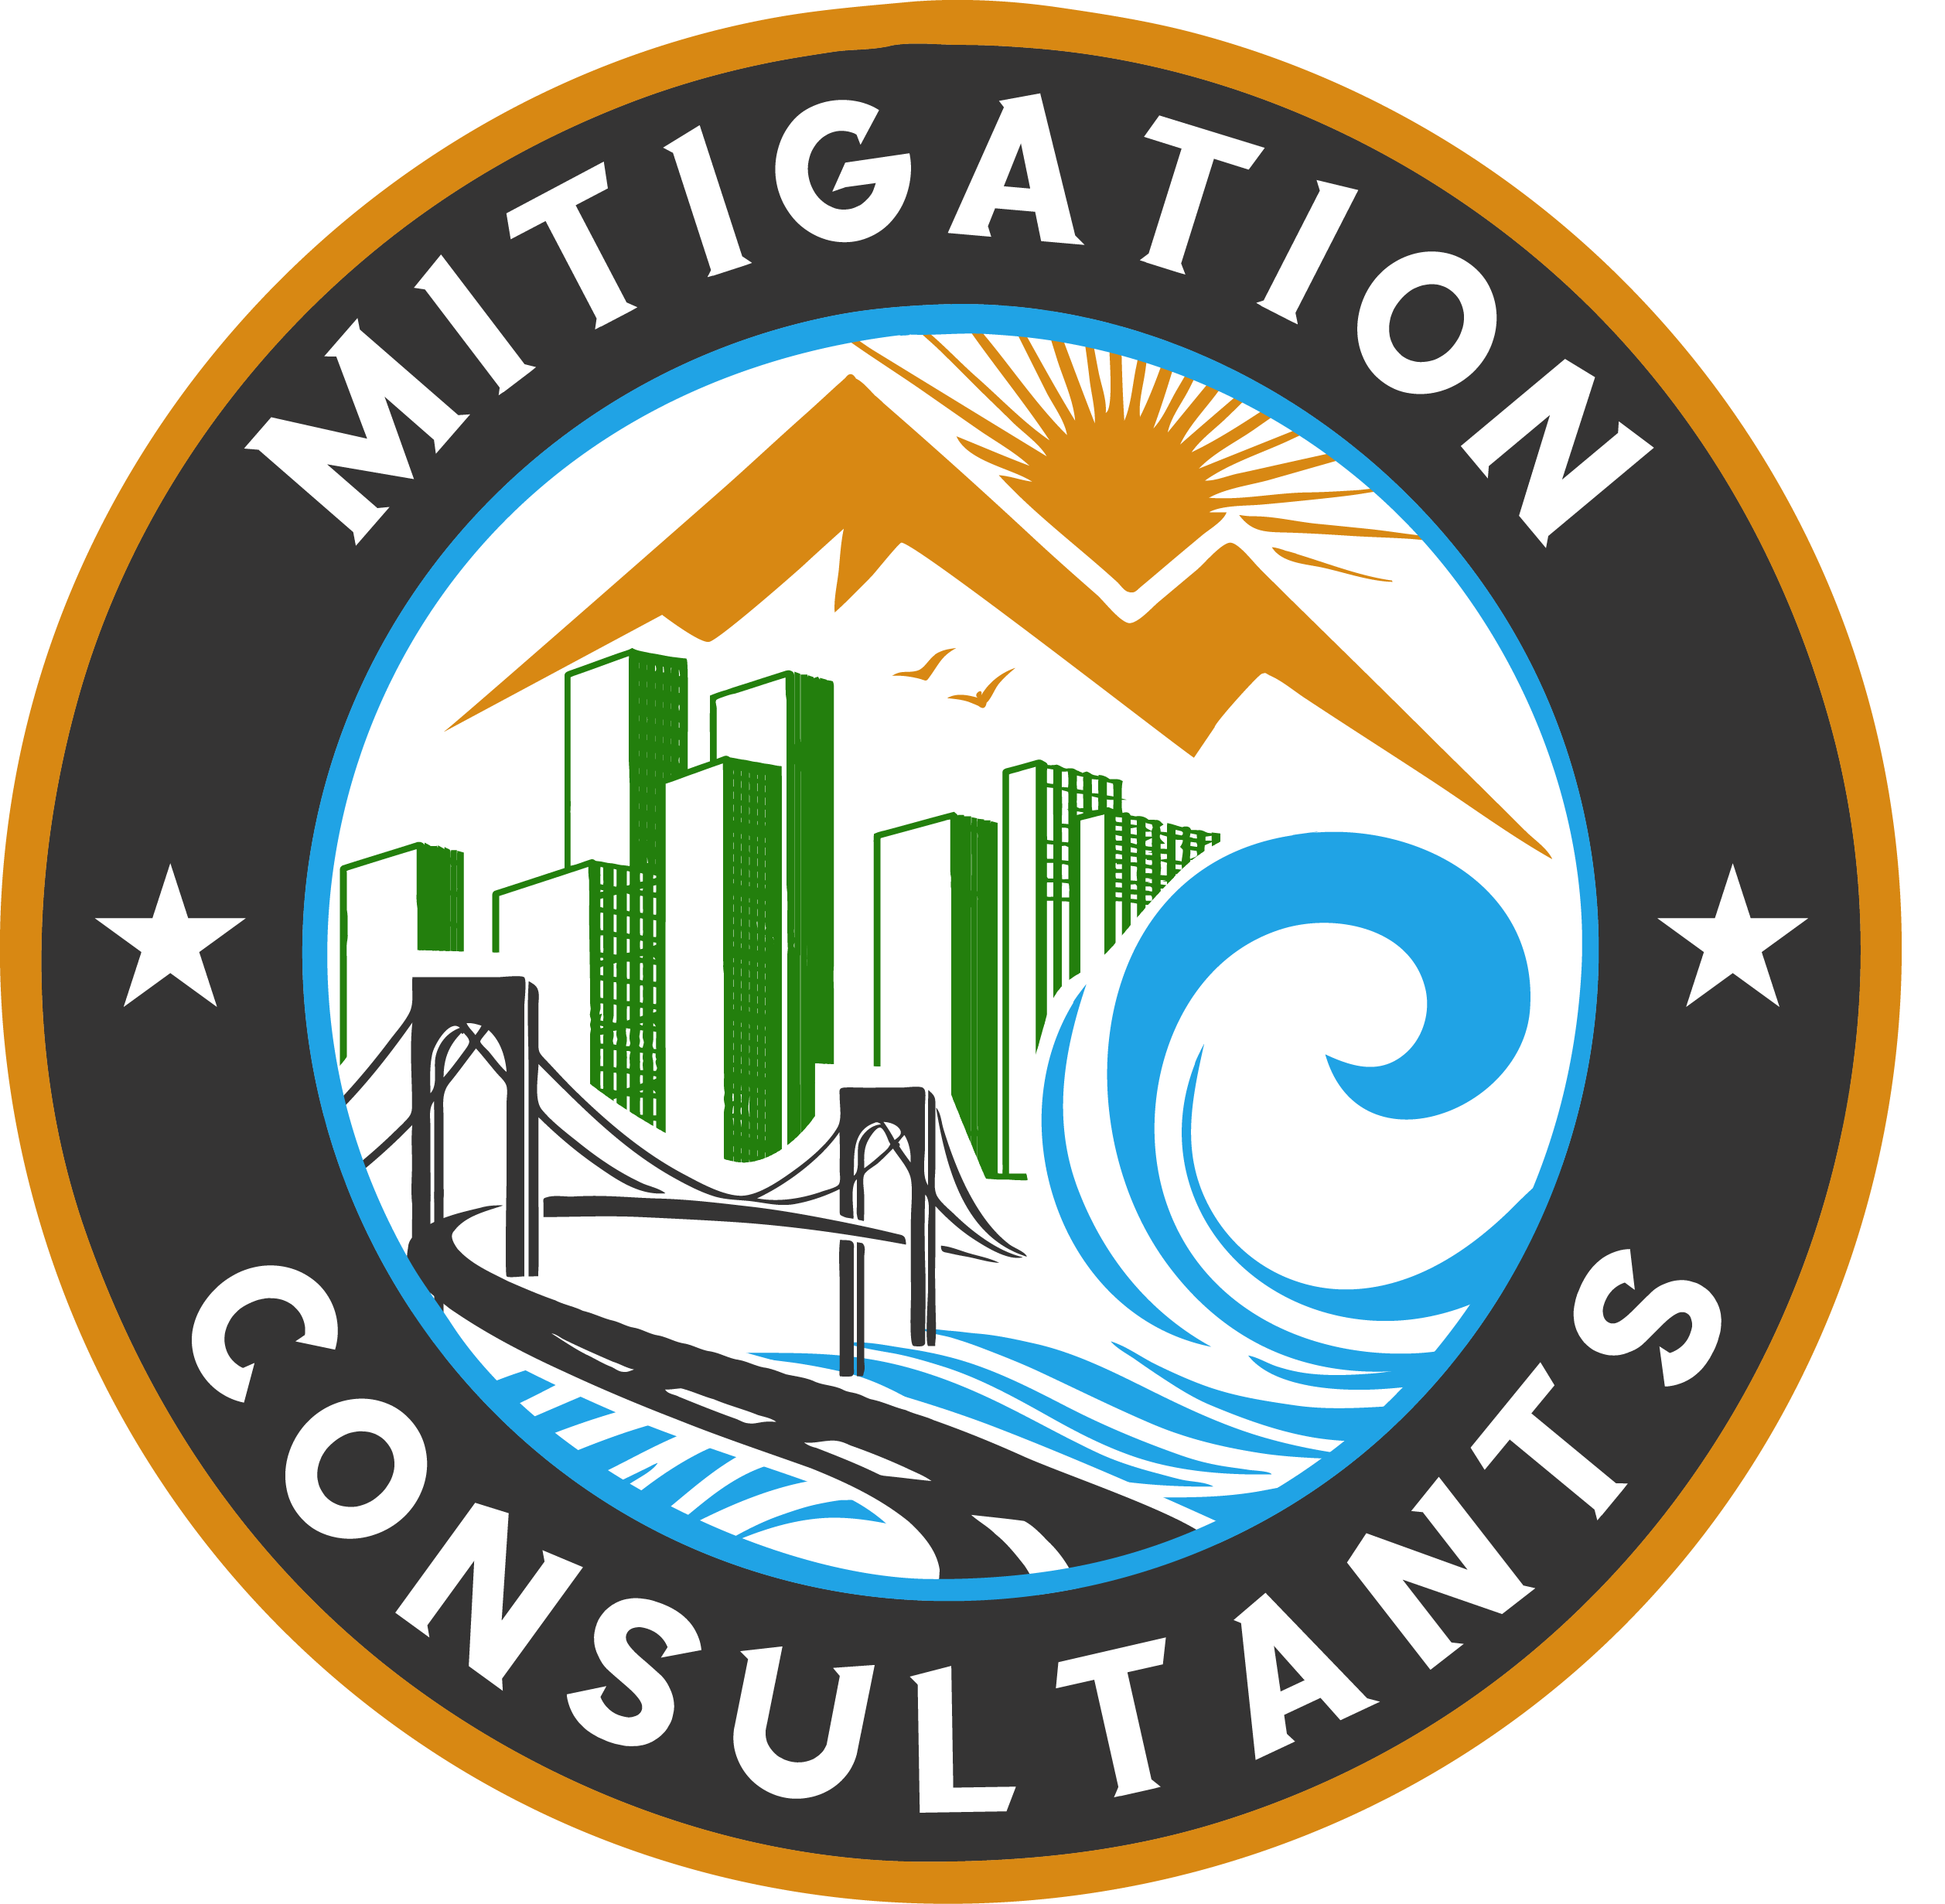 Mitigation Consultants